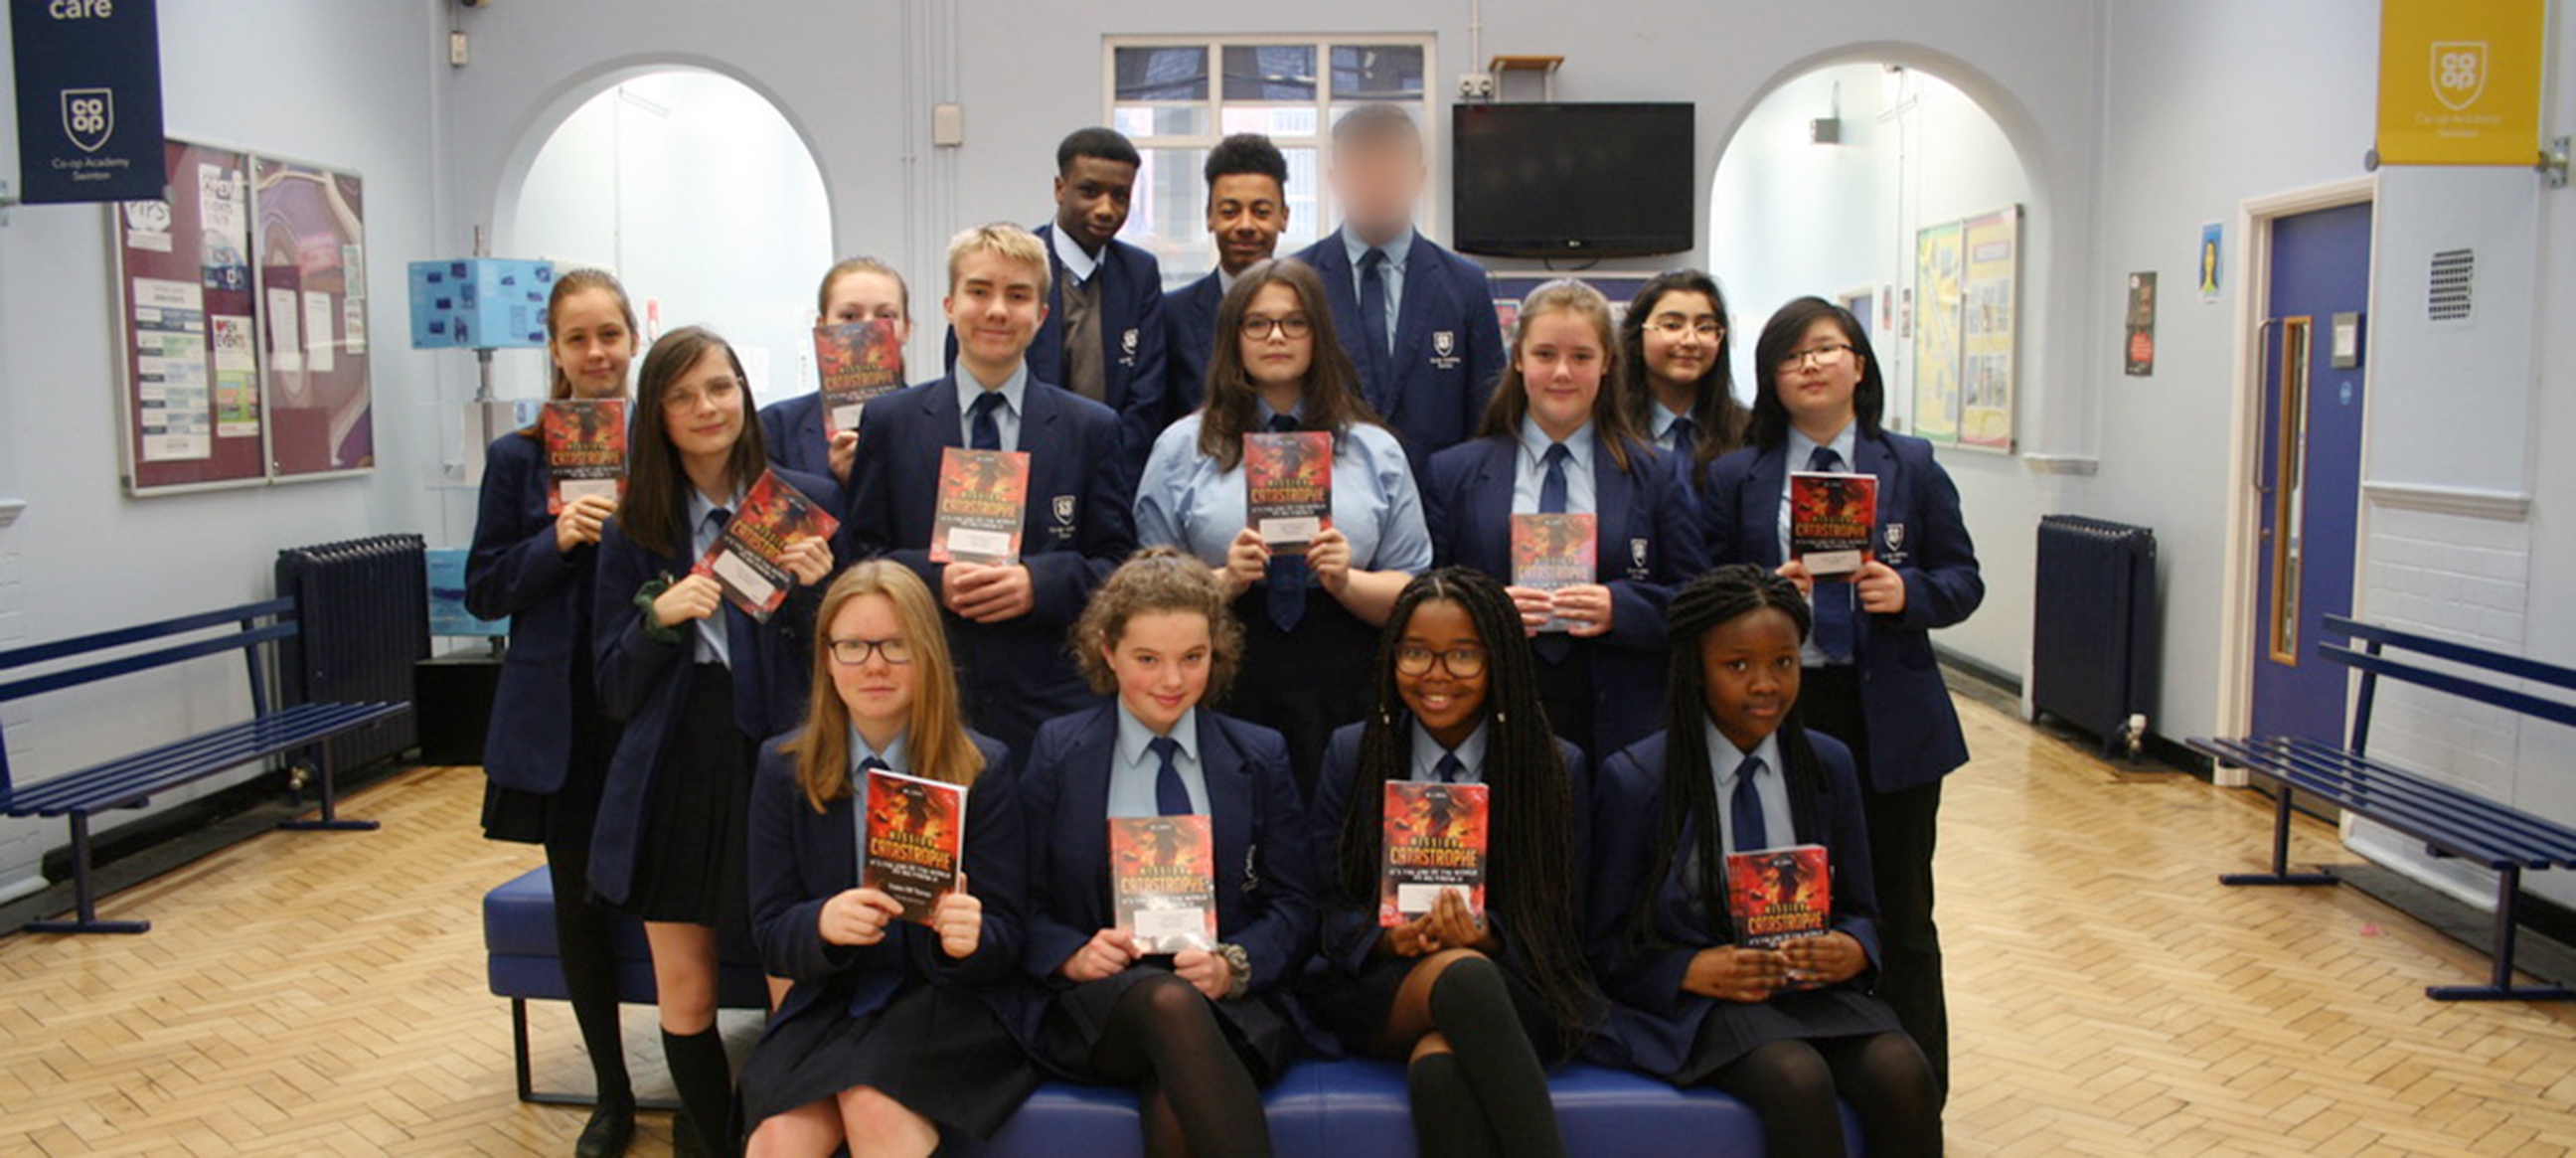 Year 9 and 10 students become published authors